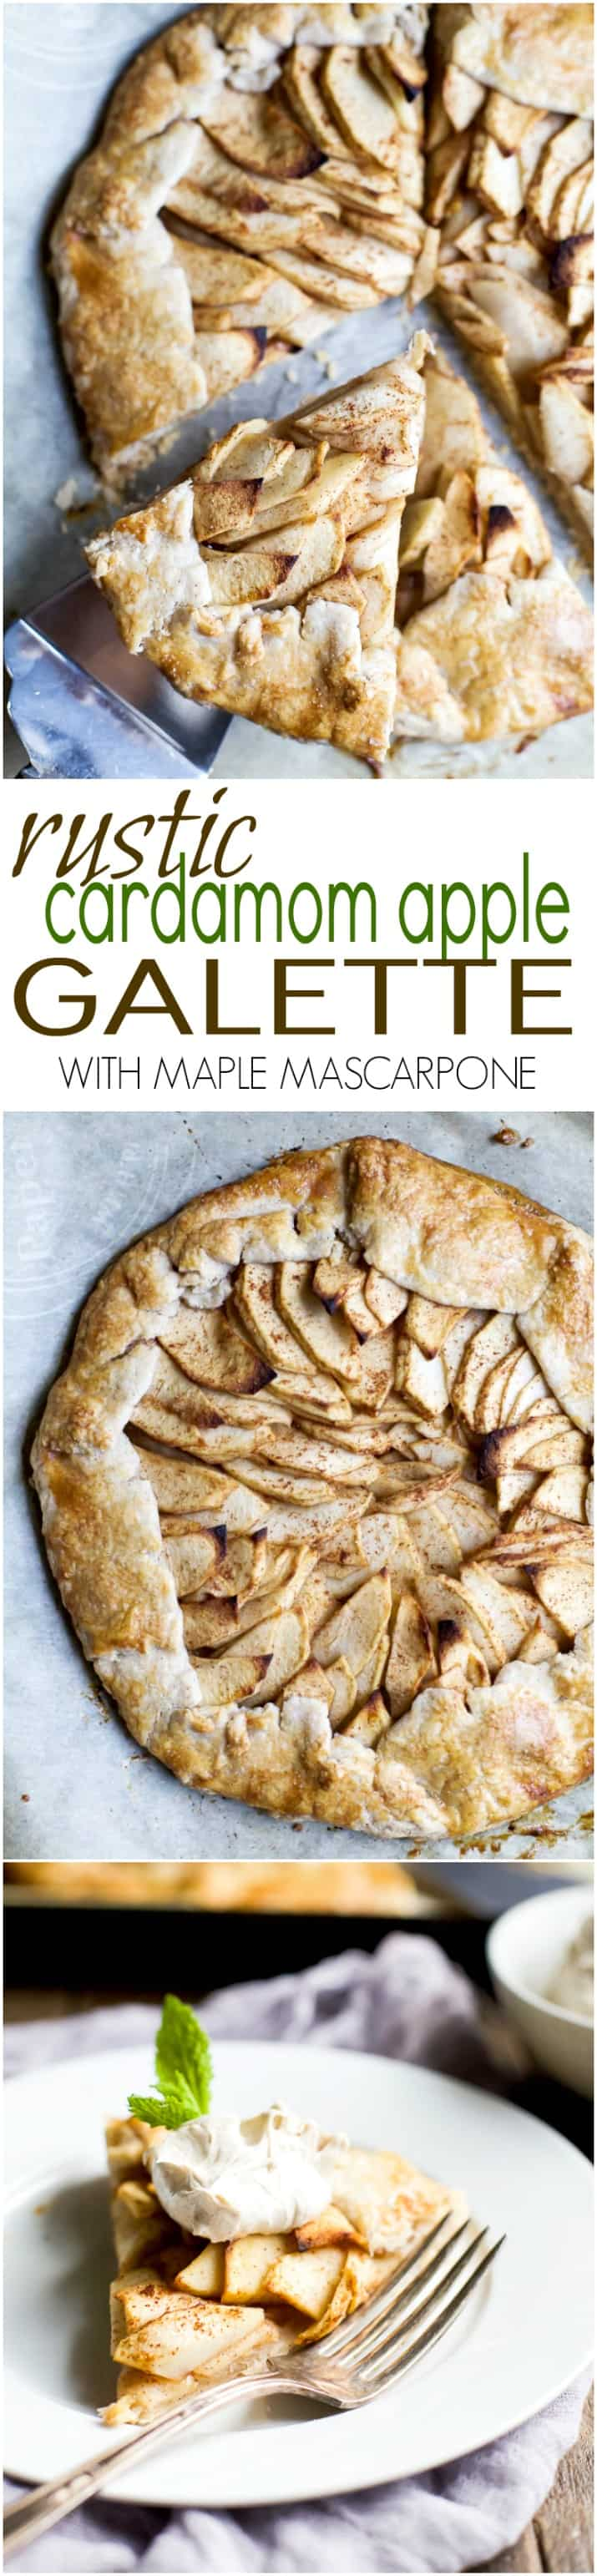 Rustic Cardamom Apple Galette with Maple Mascarpone | Easy ...